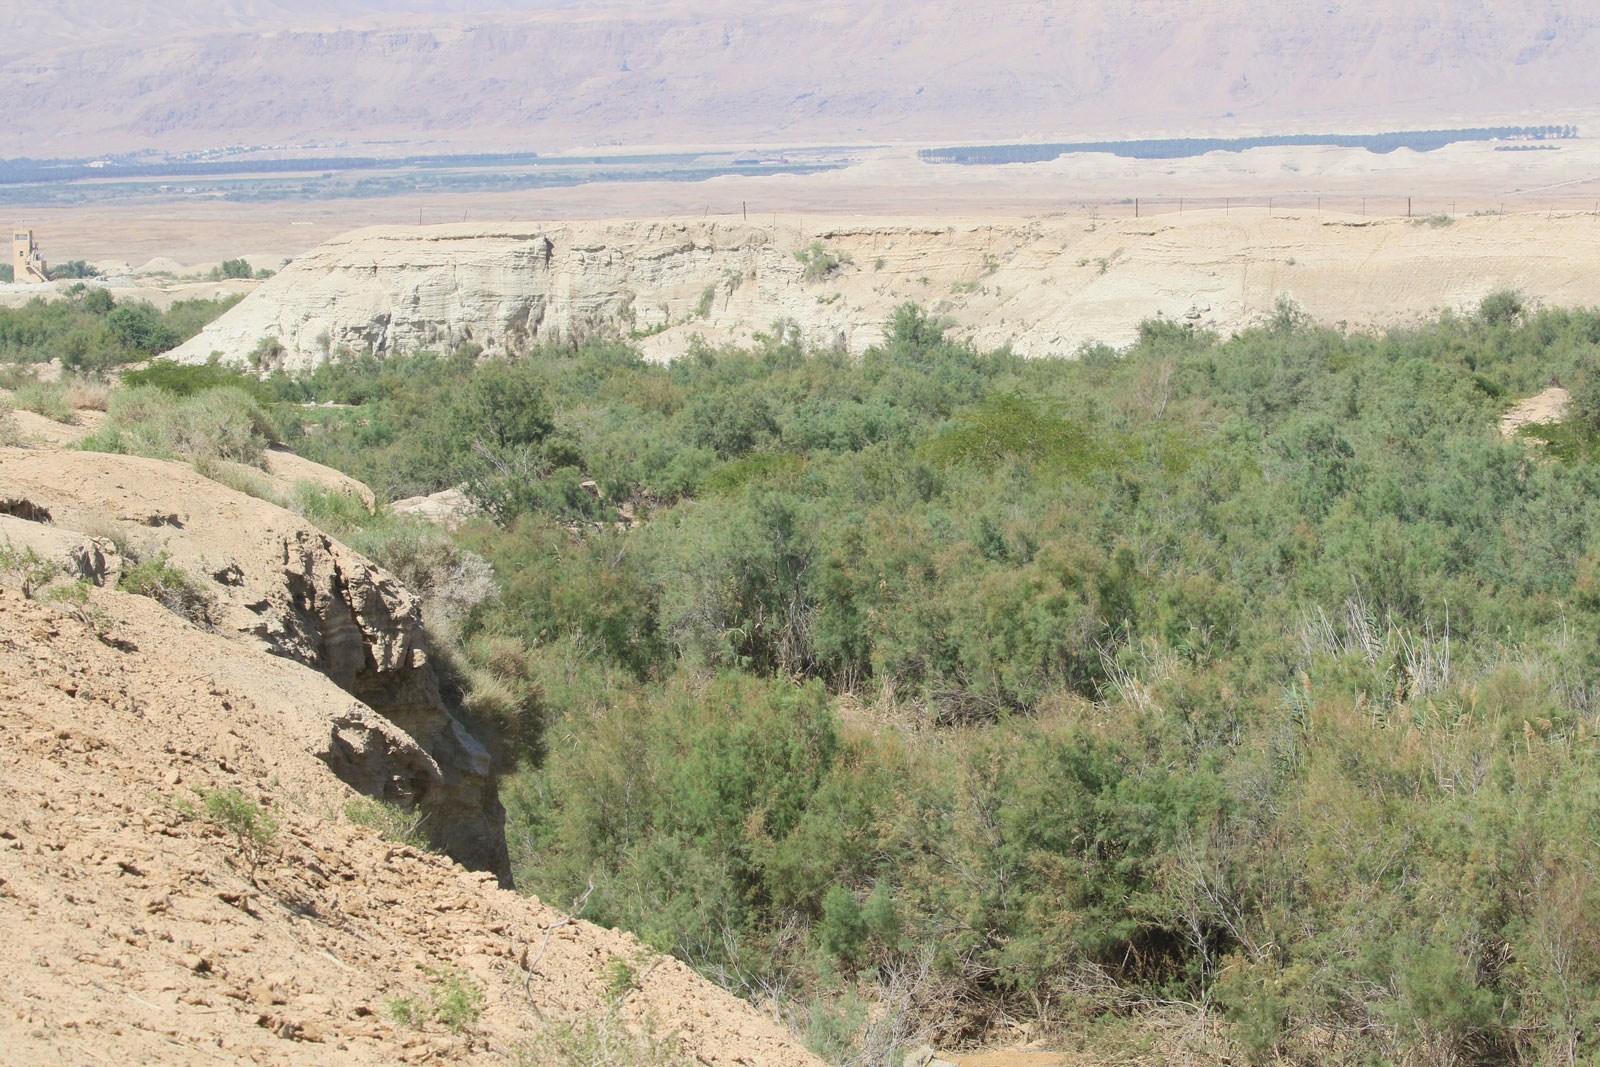 Wadi Gharaba, a special conservation and important bird area in Jordan